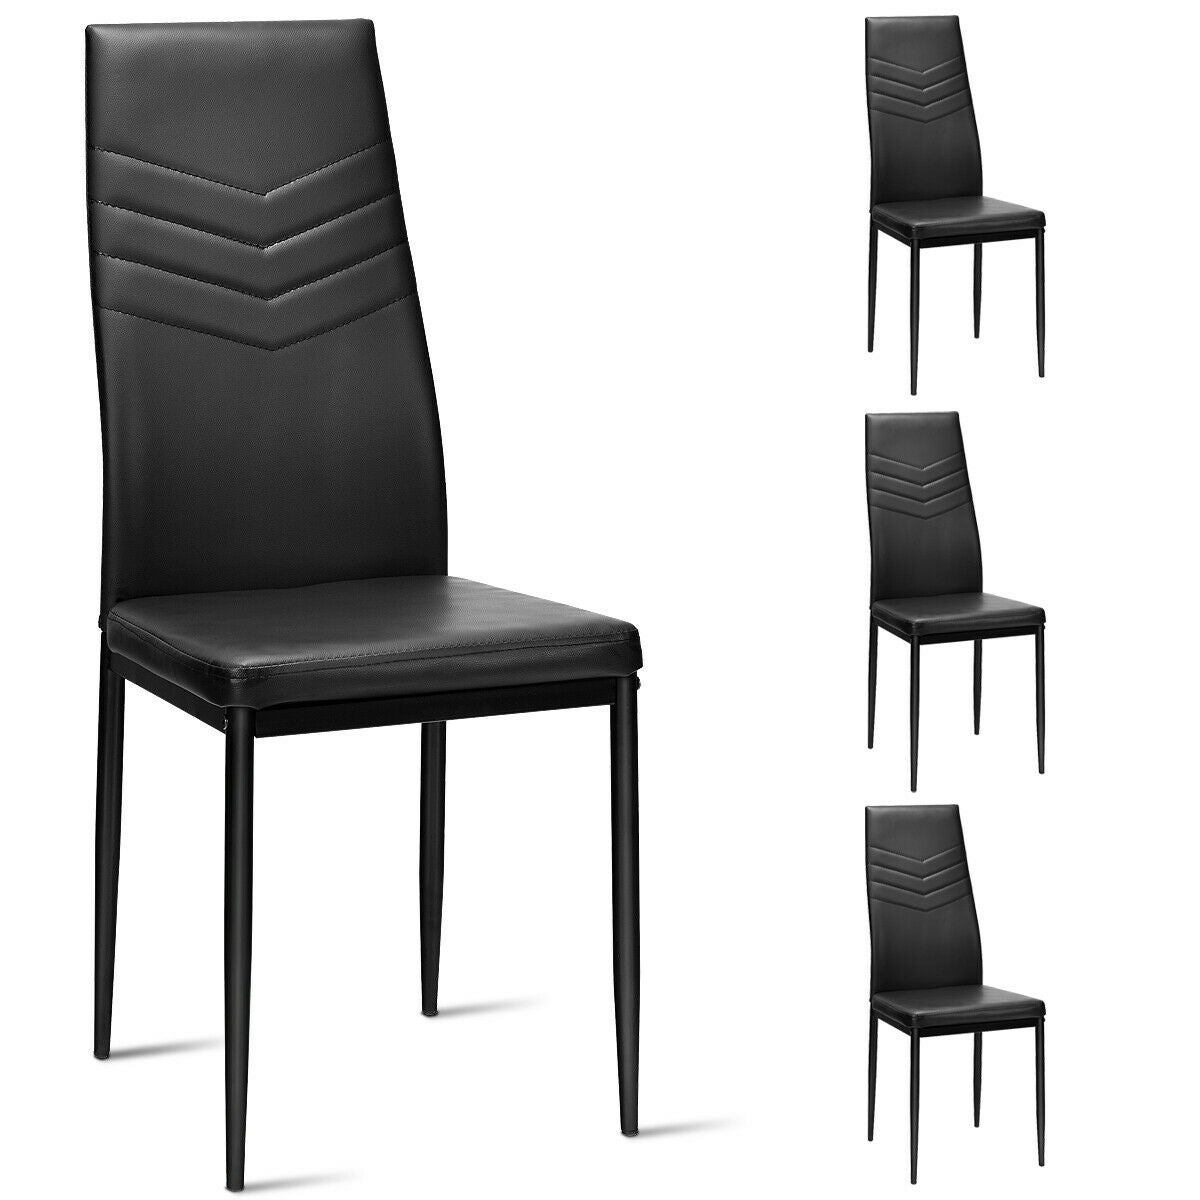 Gymax Set of 4 PVC Dining Side Chairs with Metal Frame High Back Home Kitchen Black